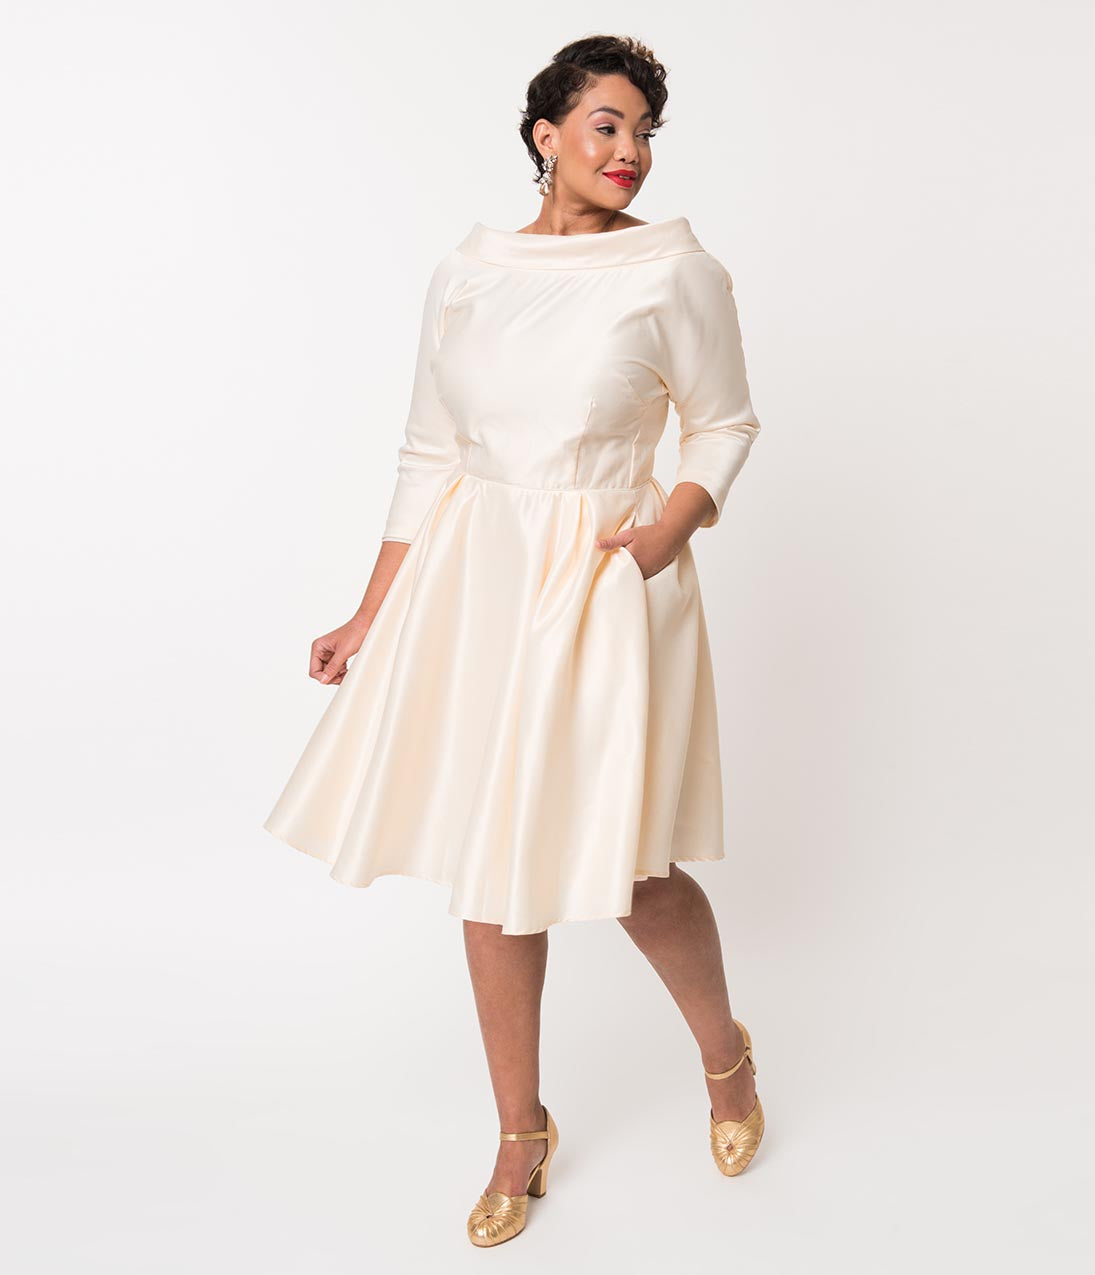 1960s Style Clothing & 60s Fashion Unique Vintage Plus Size 1950S Style Cream Satin Sleeved Lana Bridal Dress $128.00 AT vintagedancer.com